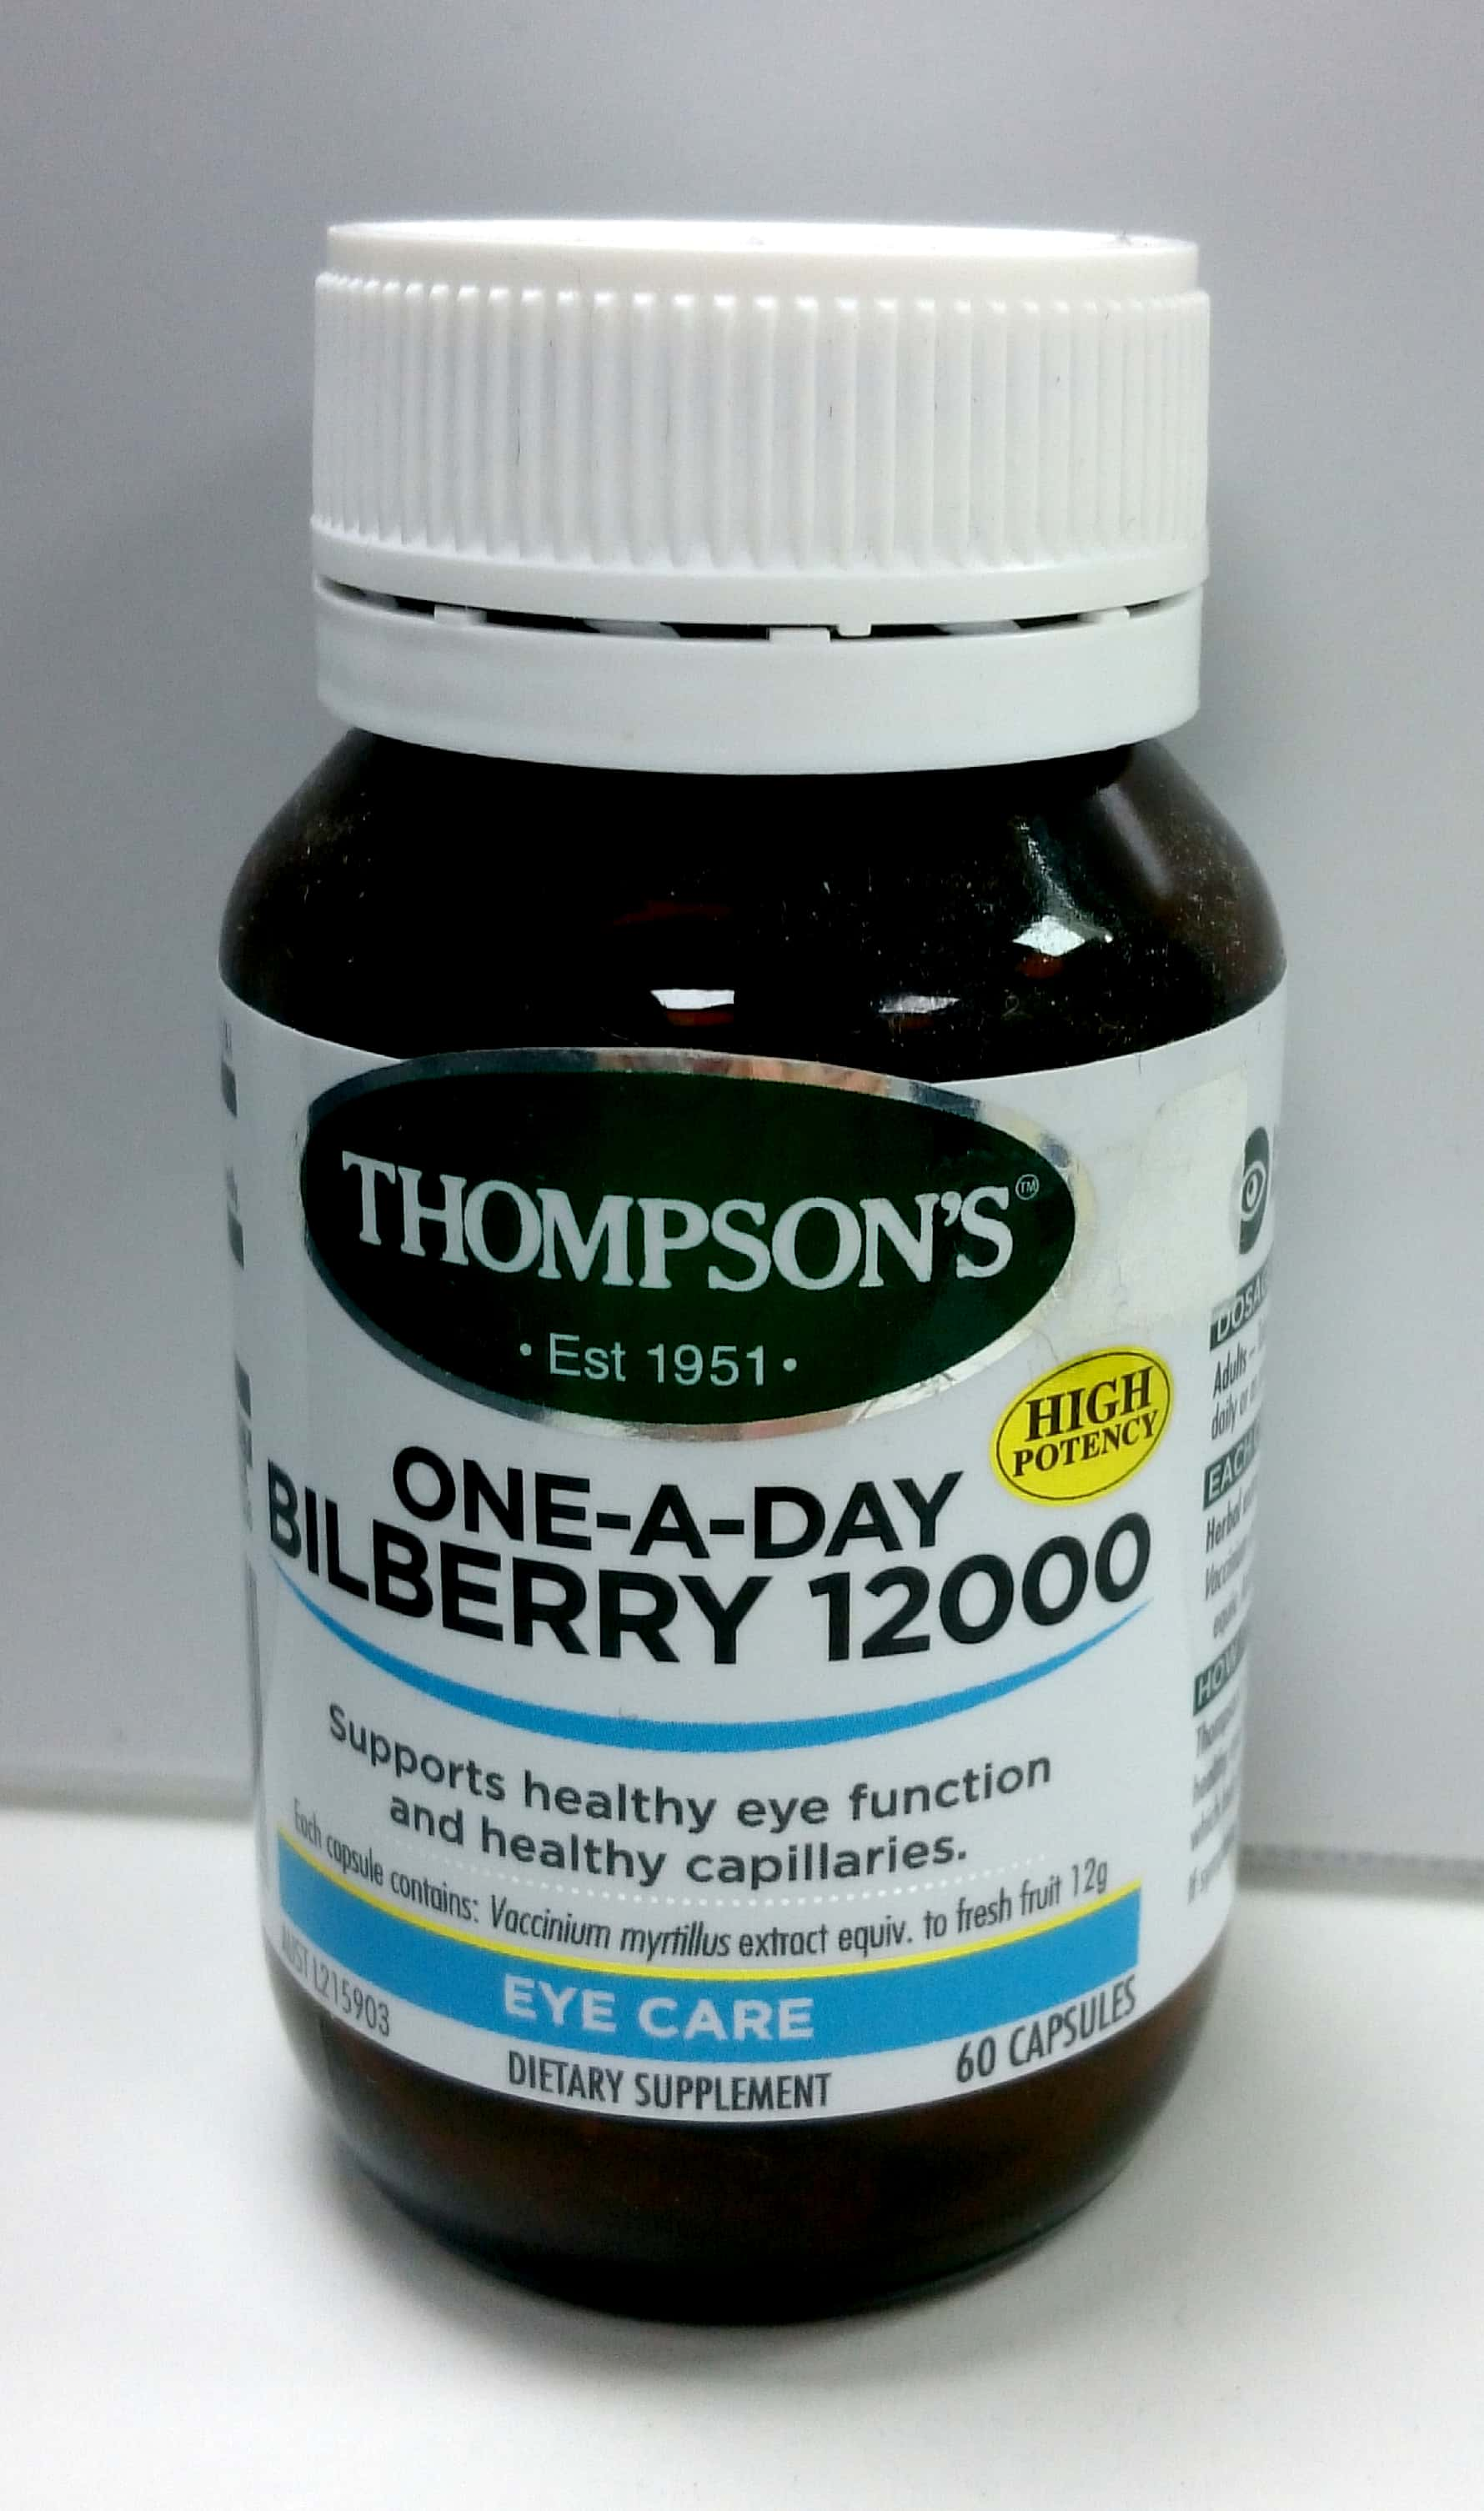 Thompsons 1d Bilberry 12000mg Cap 60 Blackmores Coq10 75mg 30 Medication 9400575002071 Front